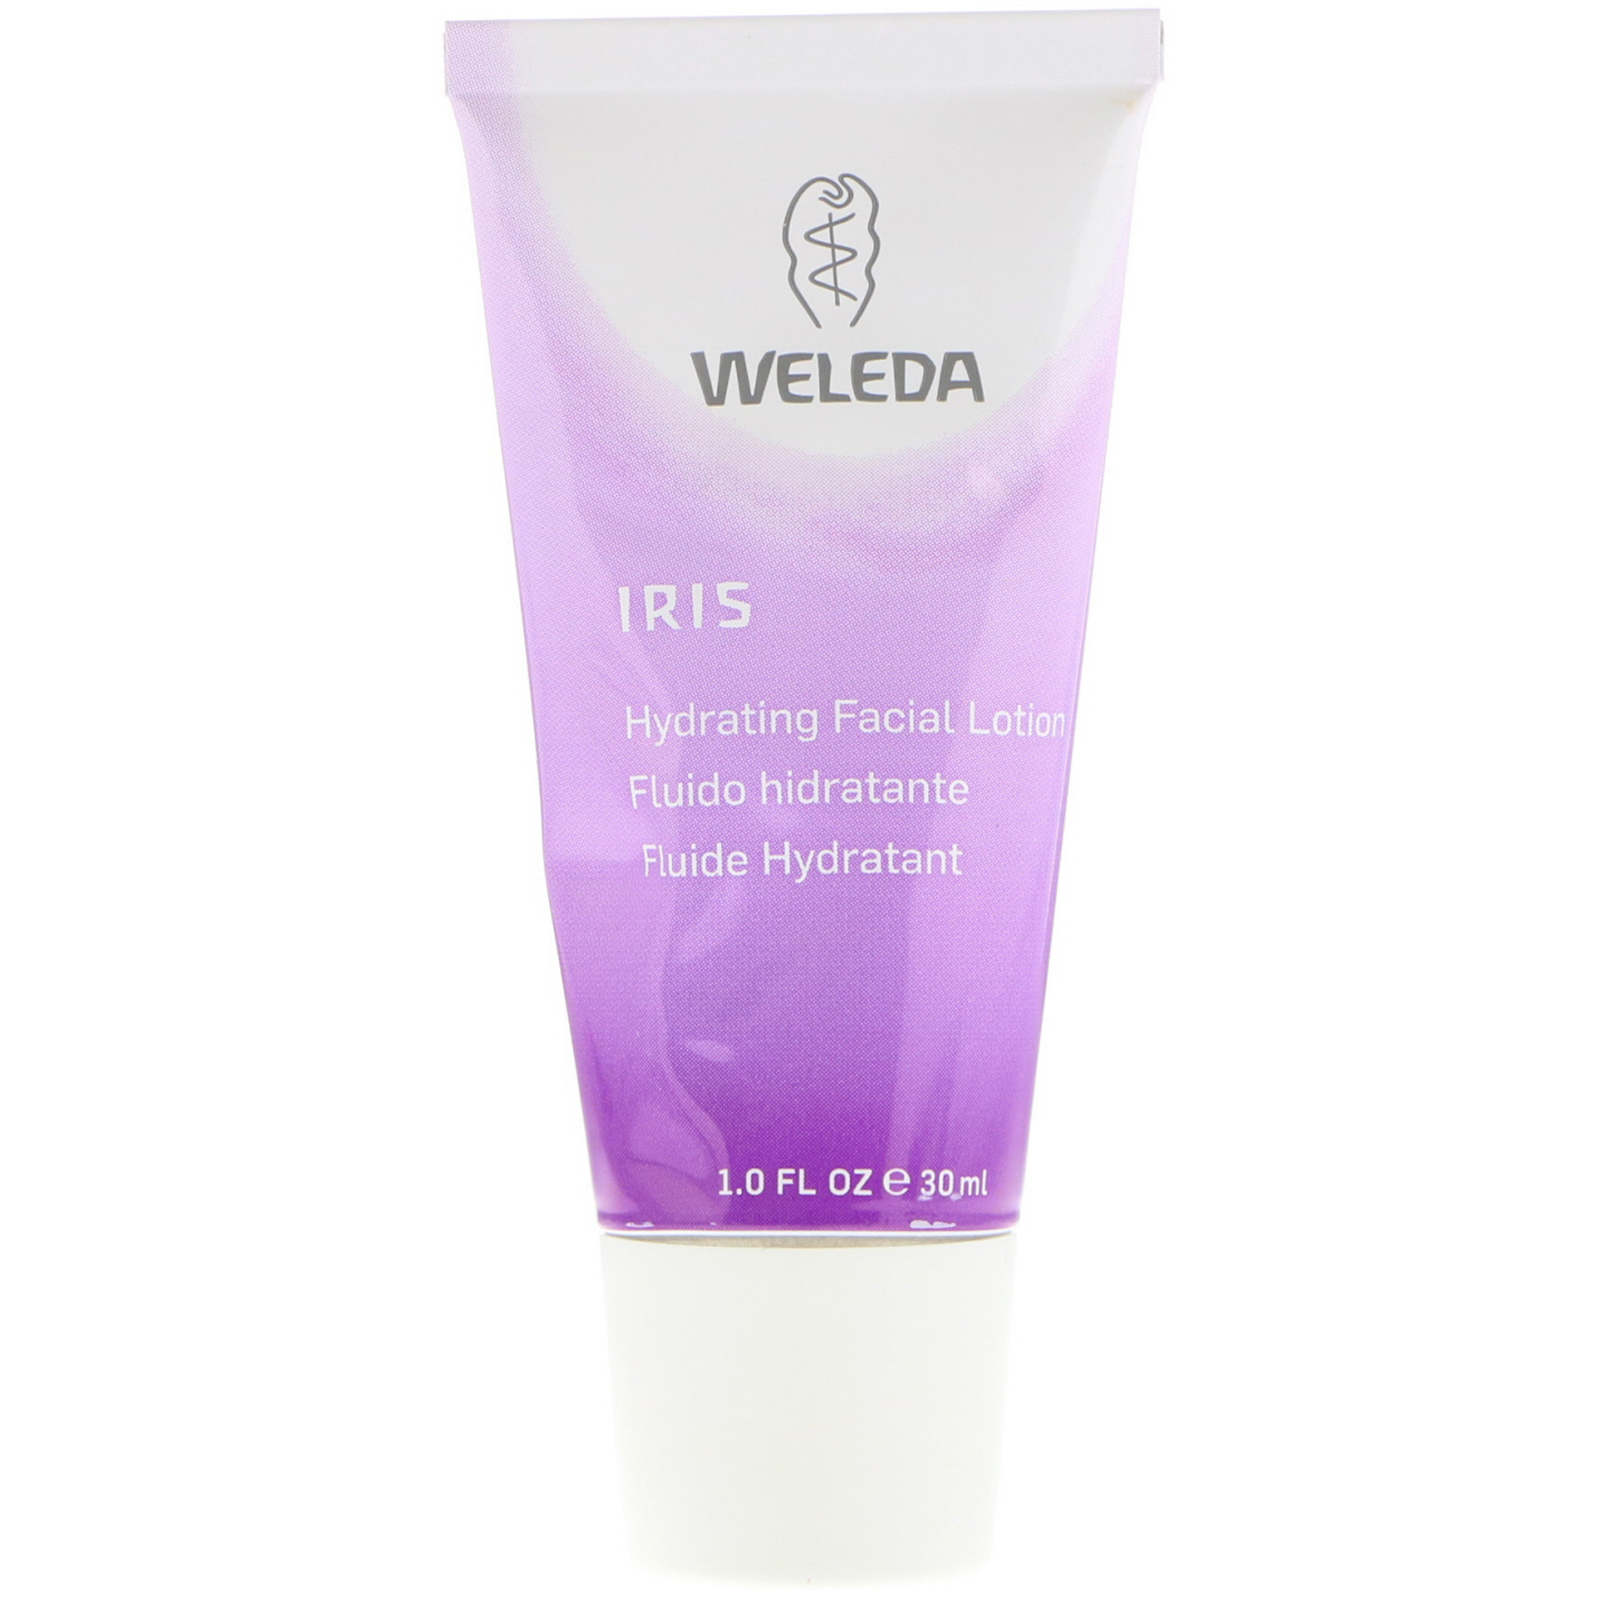 Iris Hydrating Night Cream - 1 fl. oz. by Weleda (pack of 1) Shiseido Bio-Performance Advanced Super Revitalizing Cream Retexturing/Moisturizing 1.7 oz